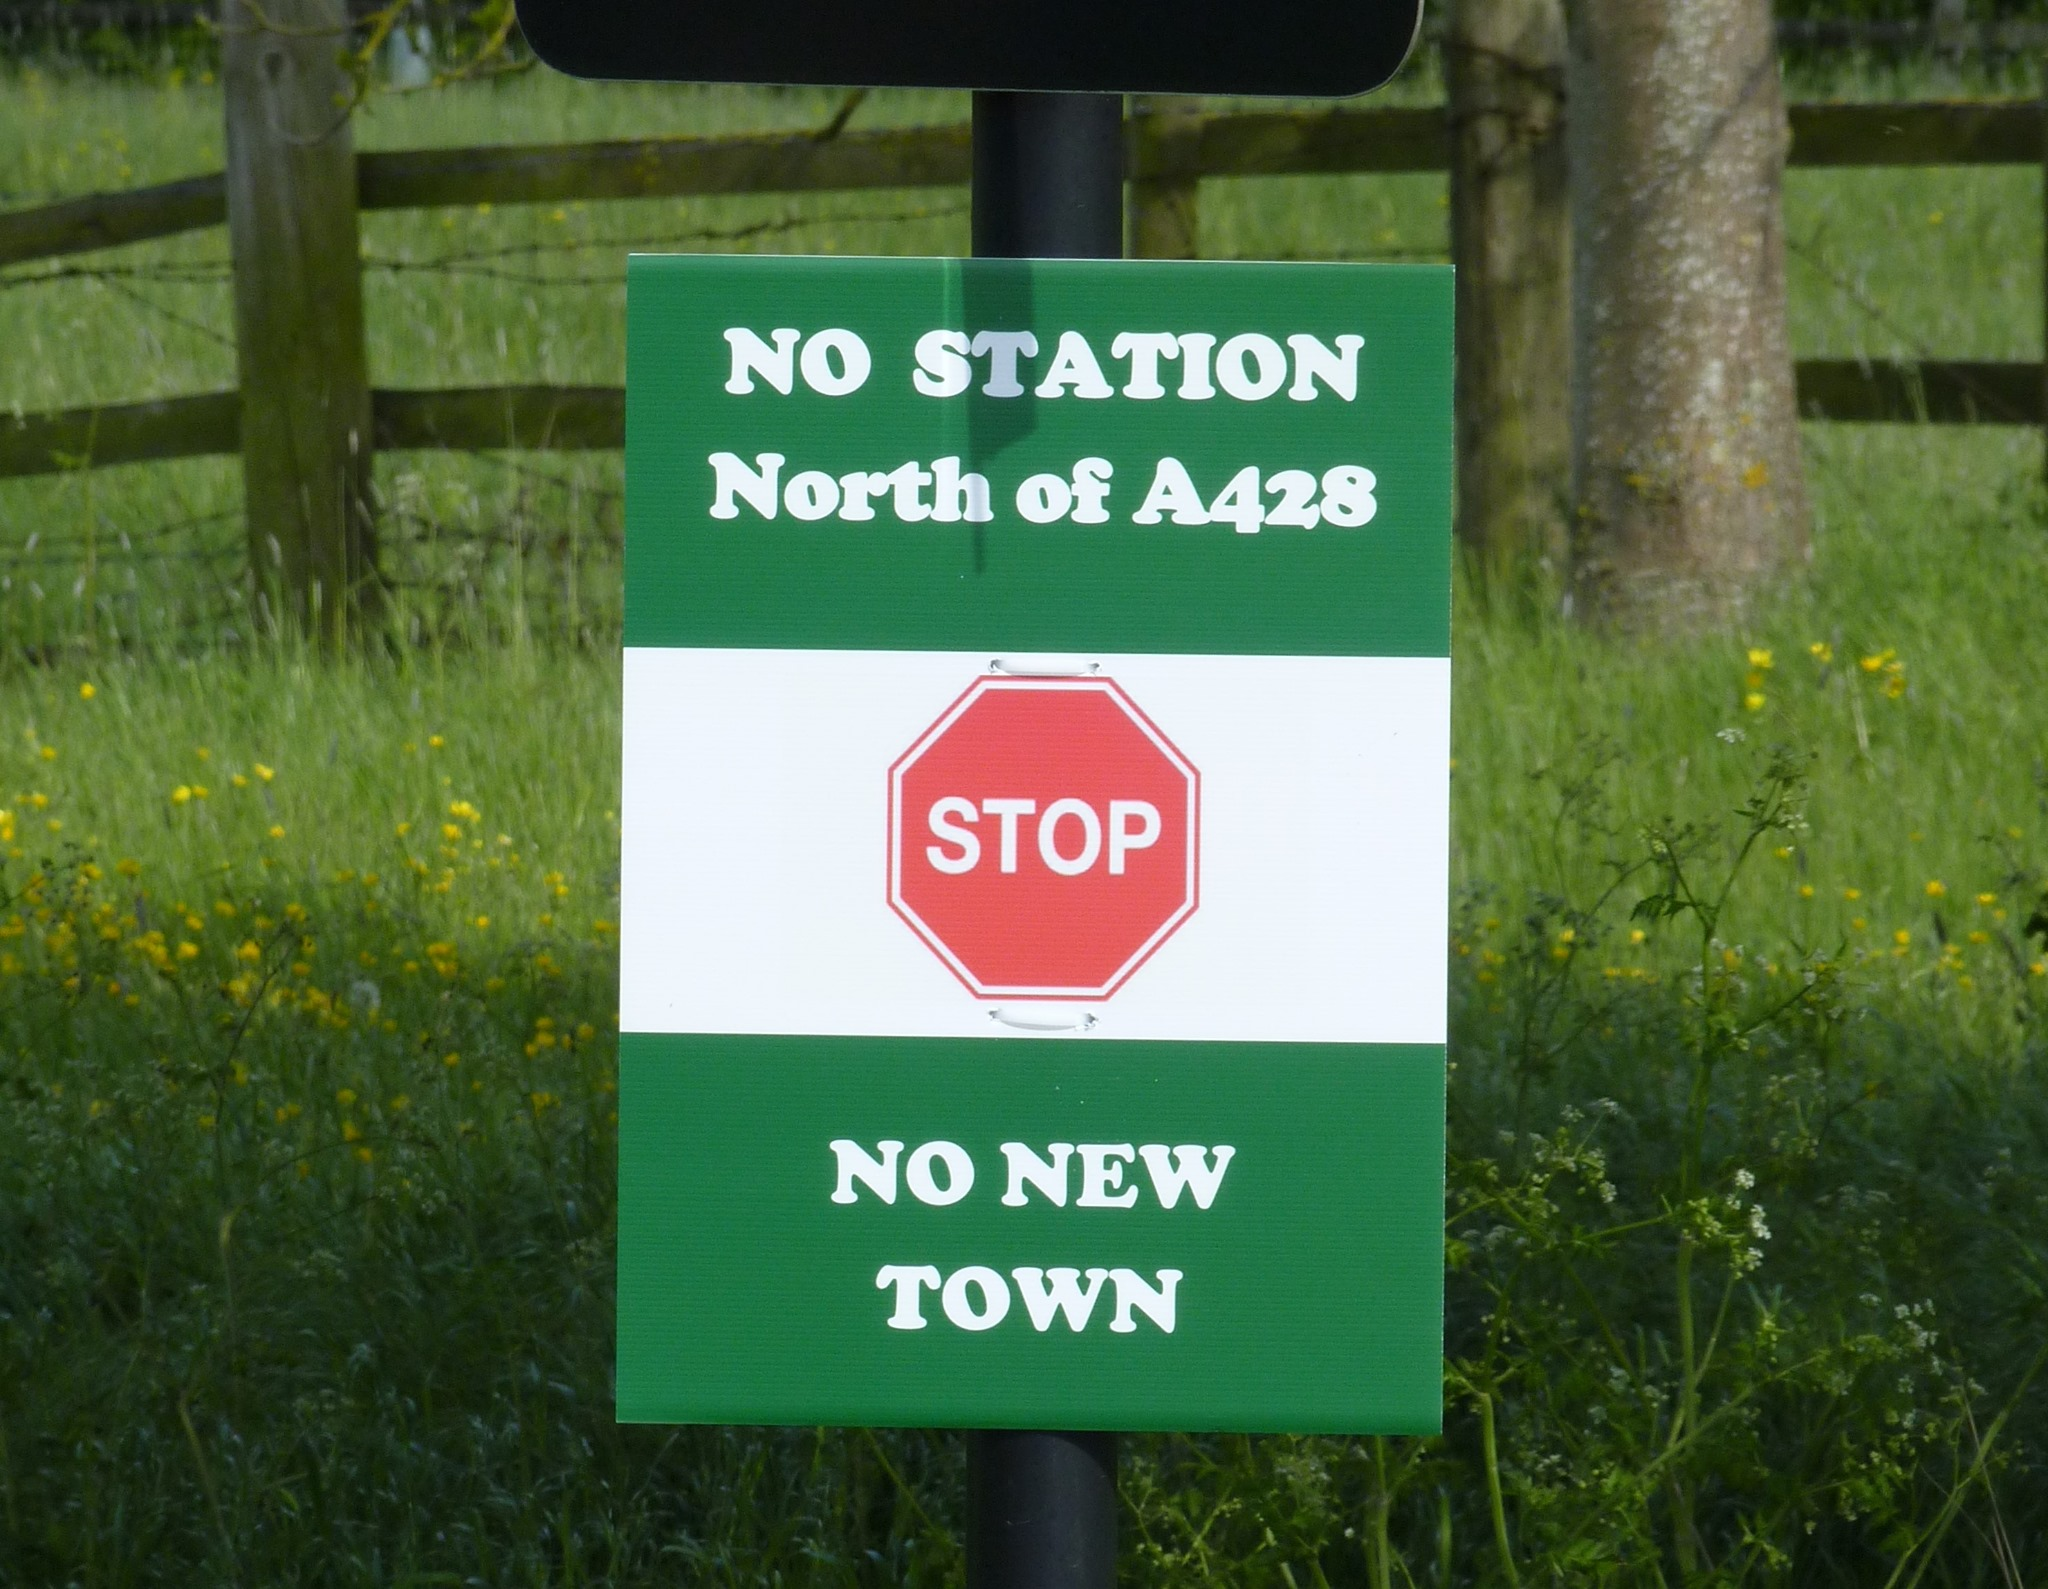 East West Rail – Sign the petition against it and follow the debate on a local Facebook page